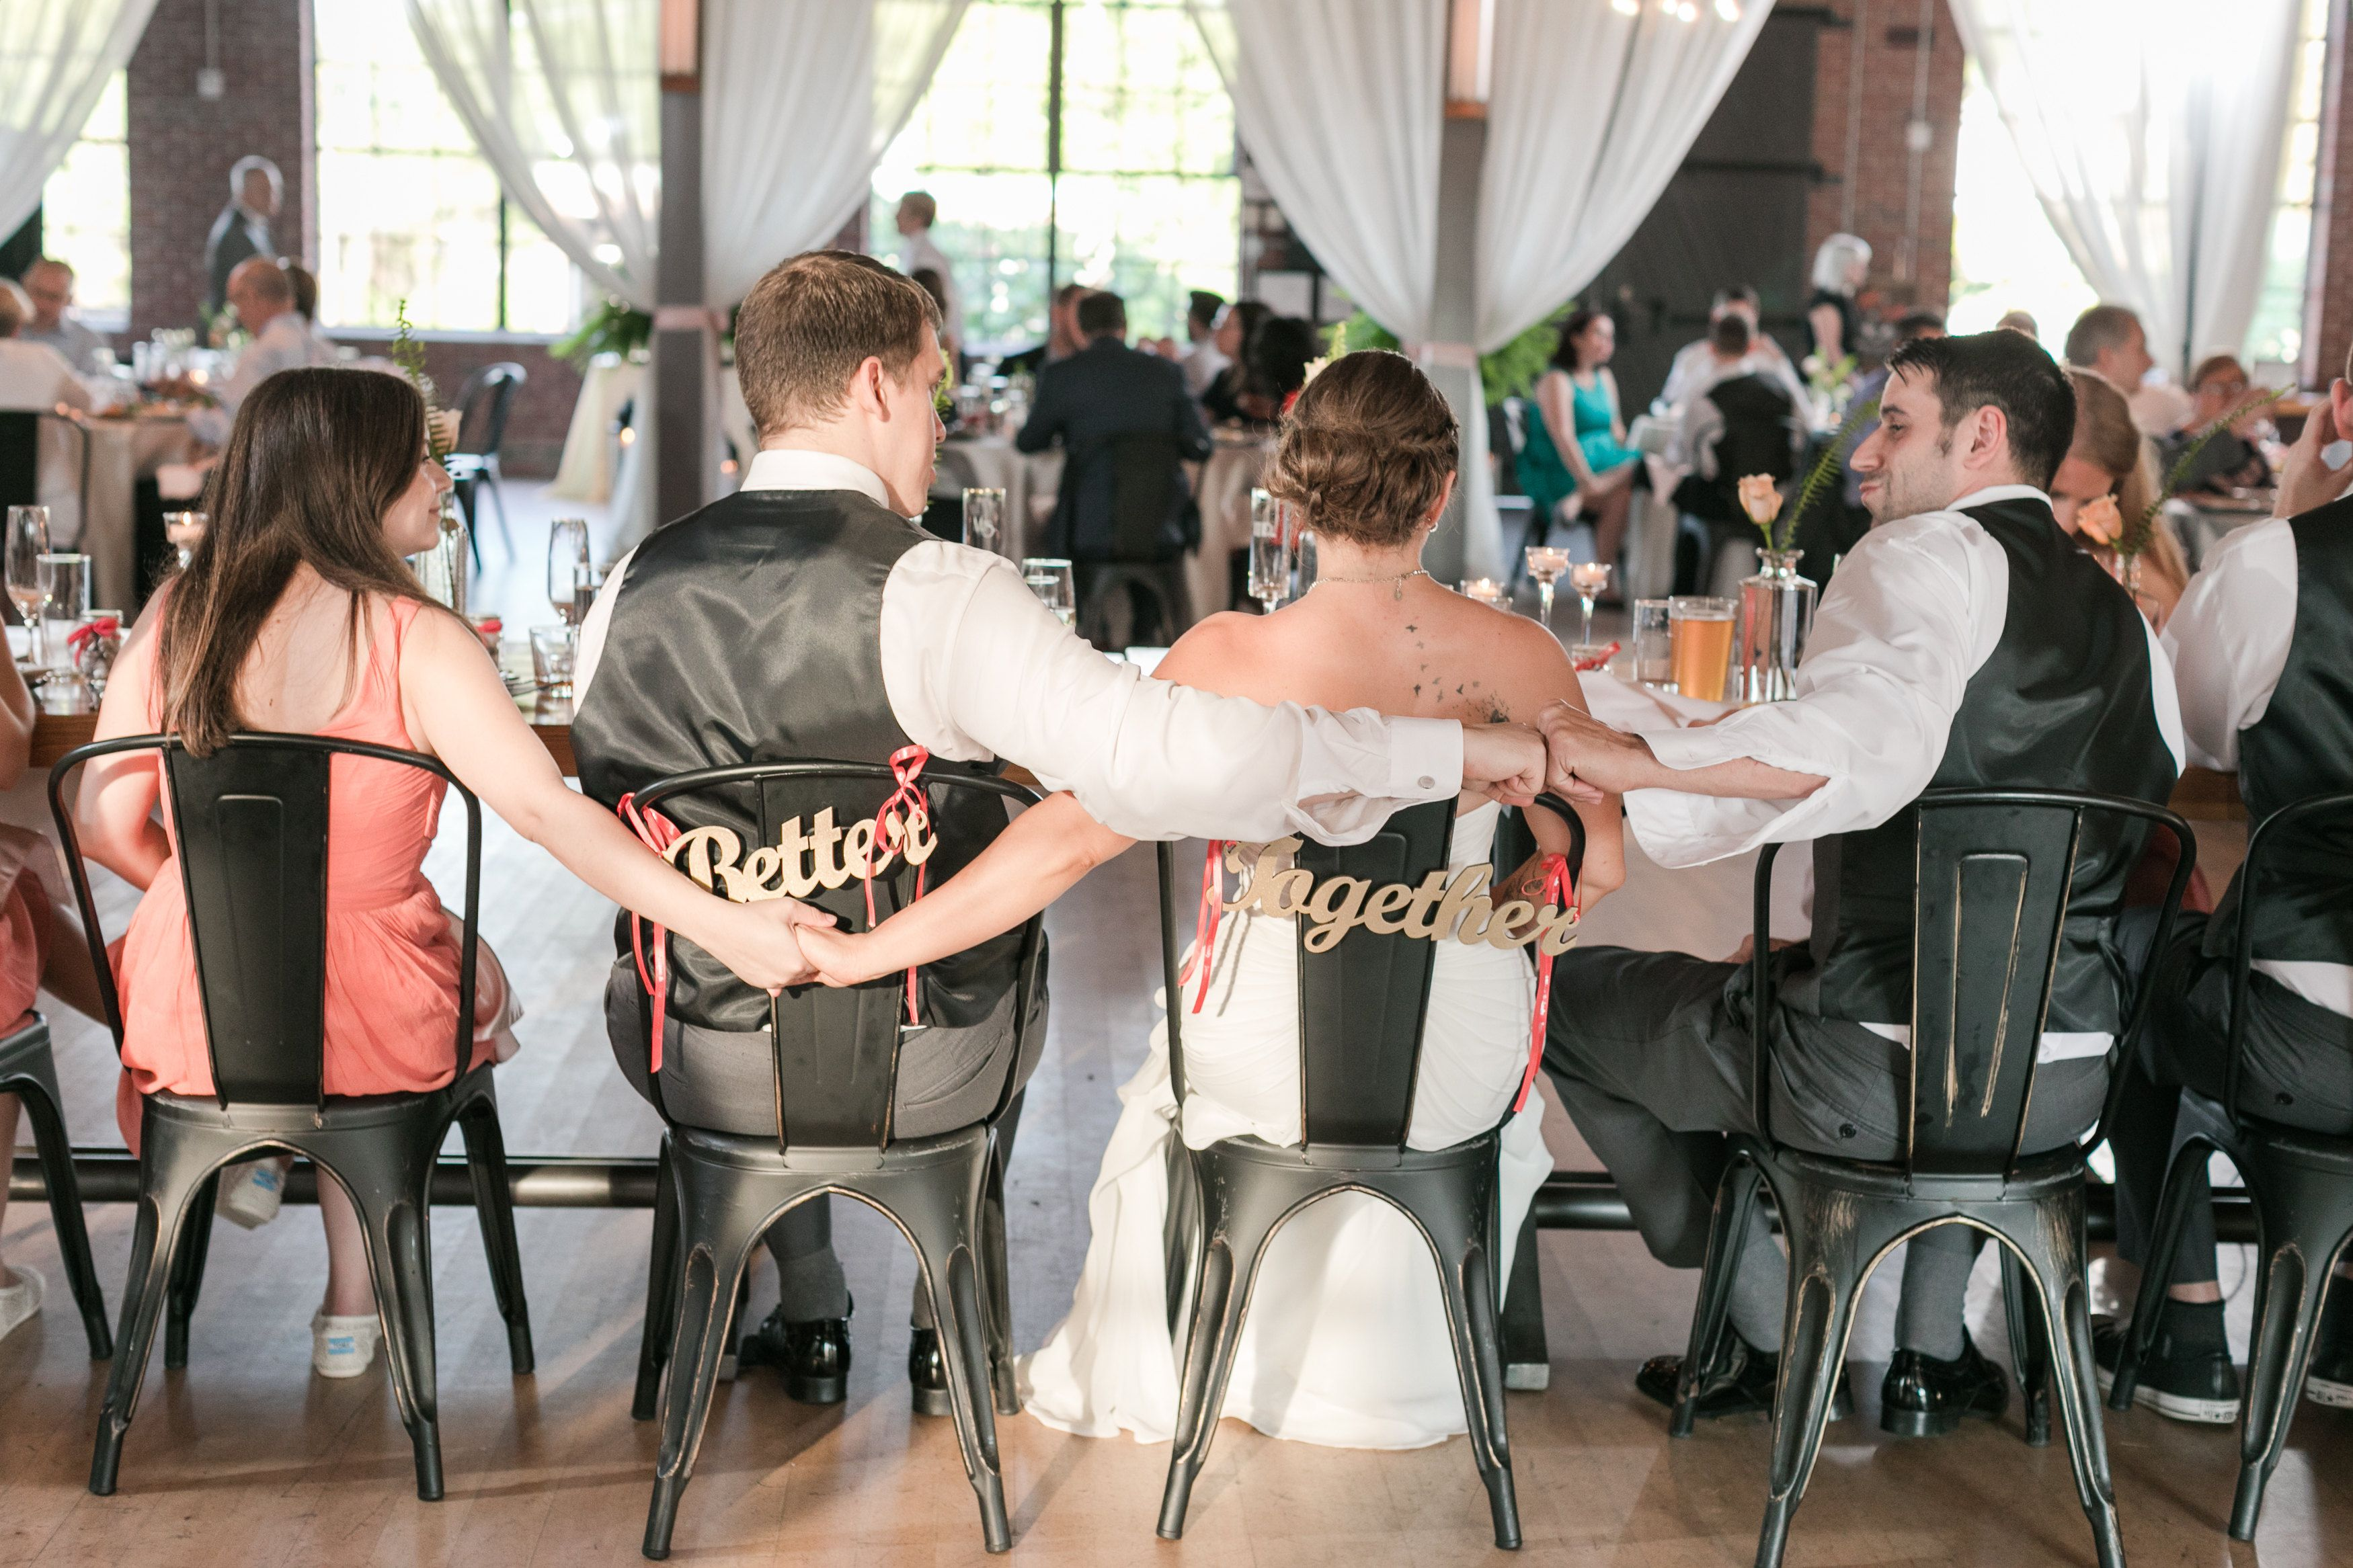 Wedding Chair Signs Better Together Hanging Signs For Bride Groom